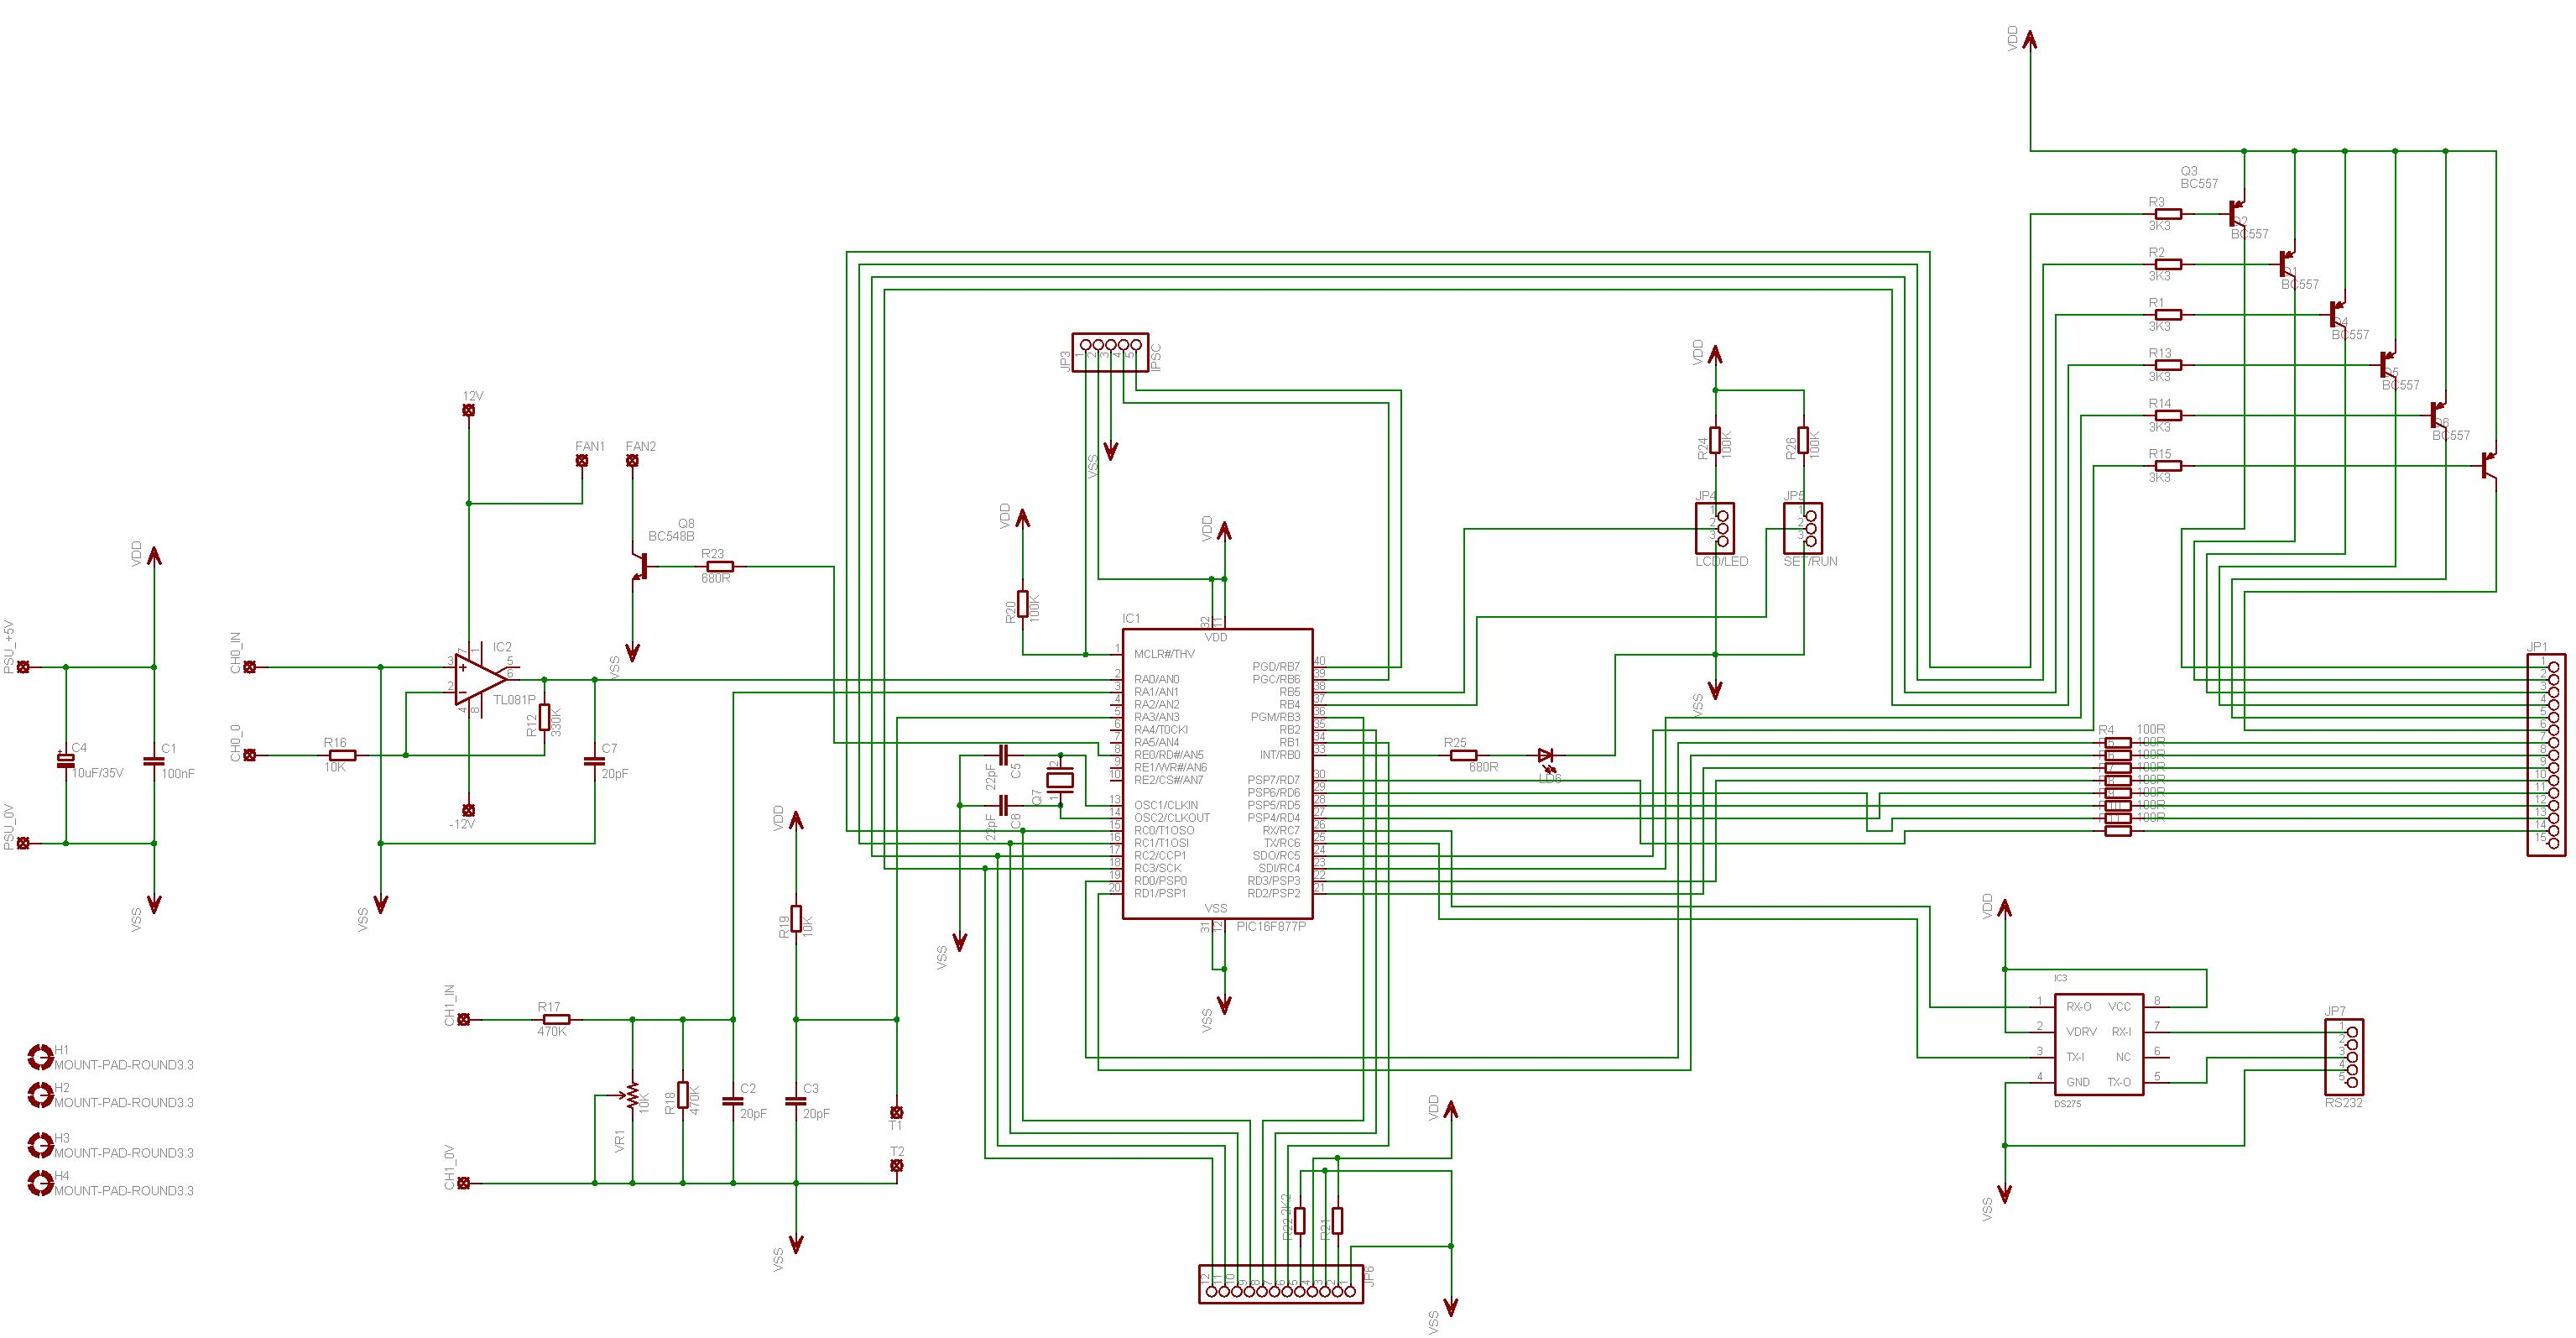 Digital Volt And Amp Meter With Temperature Control Electronics Lab Dummy Load Circuit Constant Current Schema Schematic Diagrams